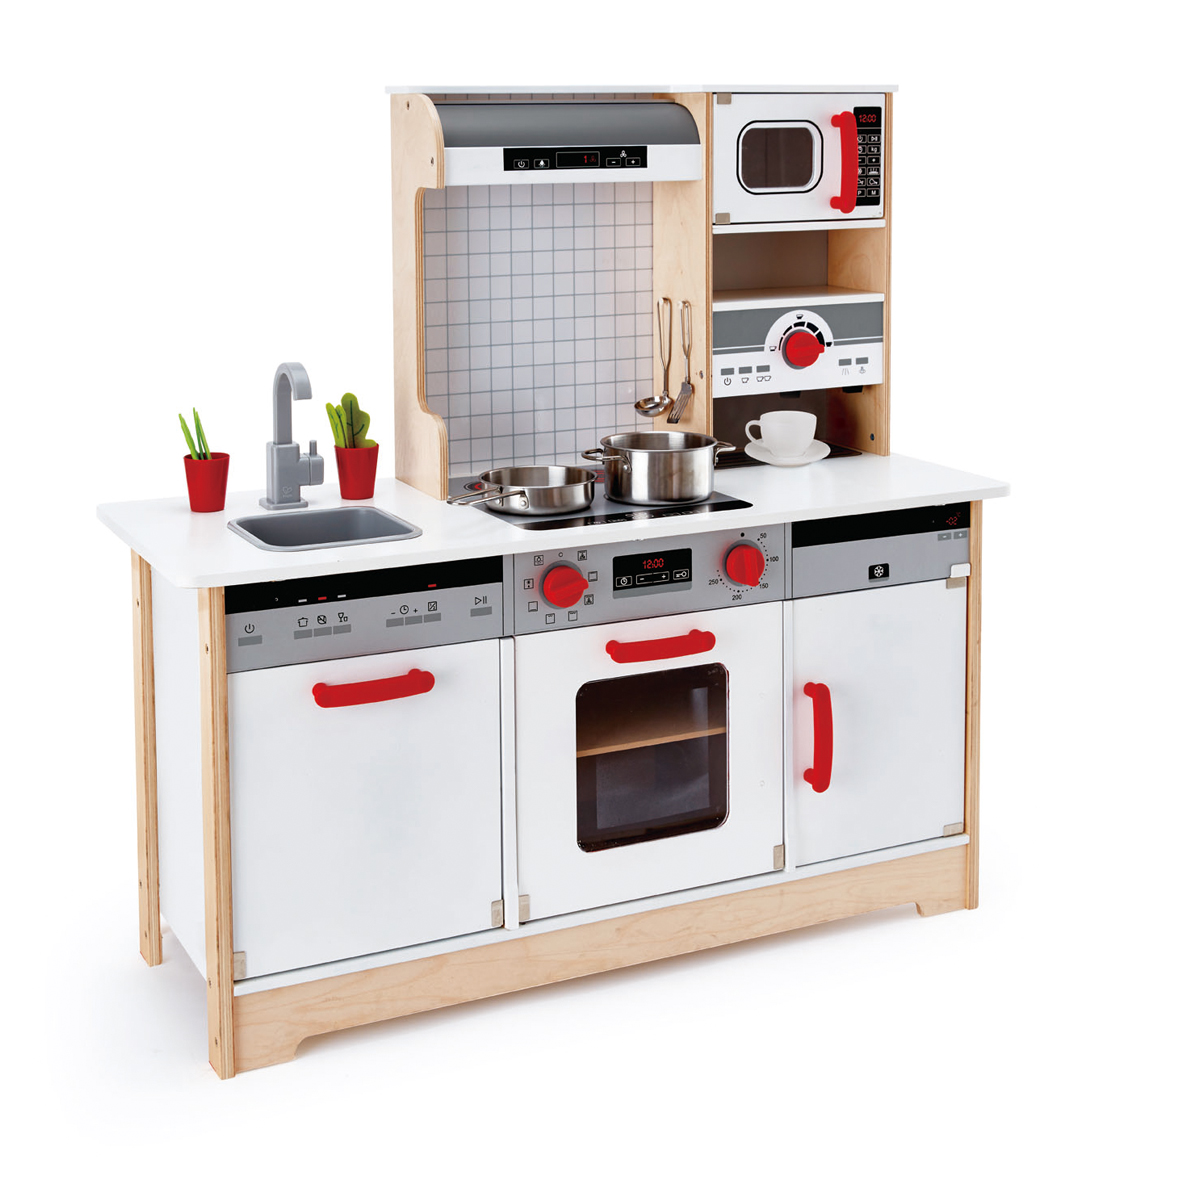 Hape all in 1 kitchen e3145 pirum for Kitchen set nz